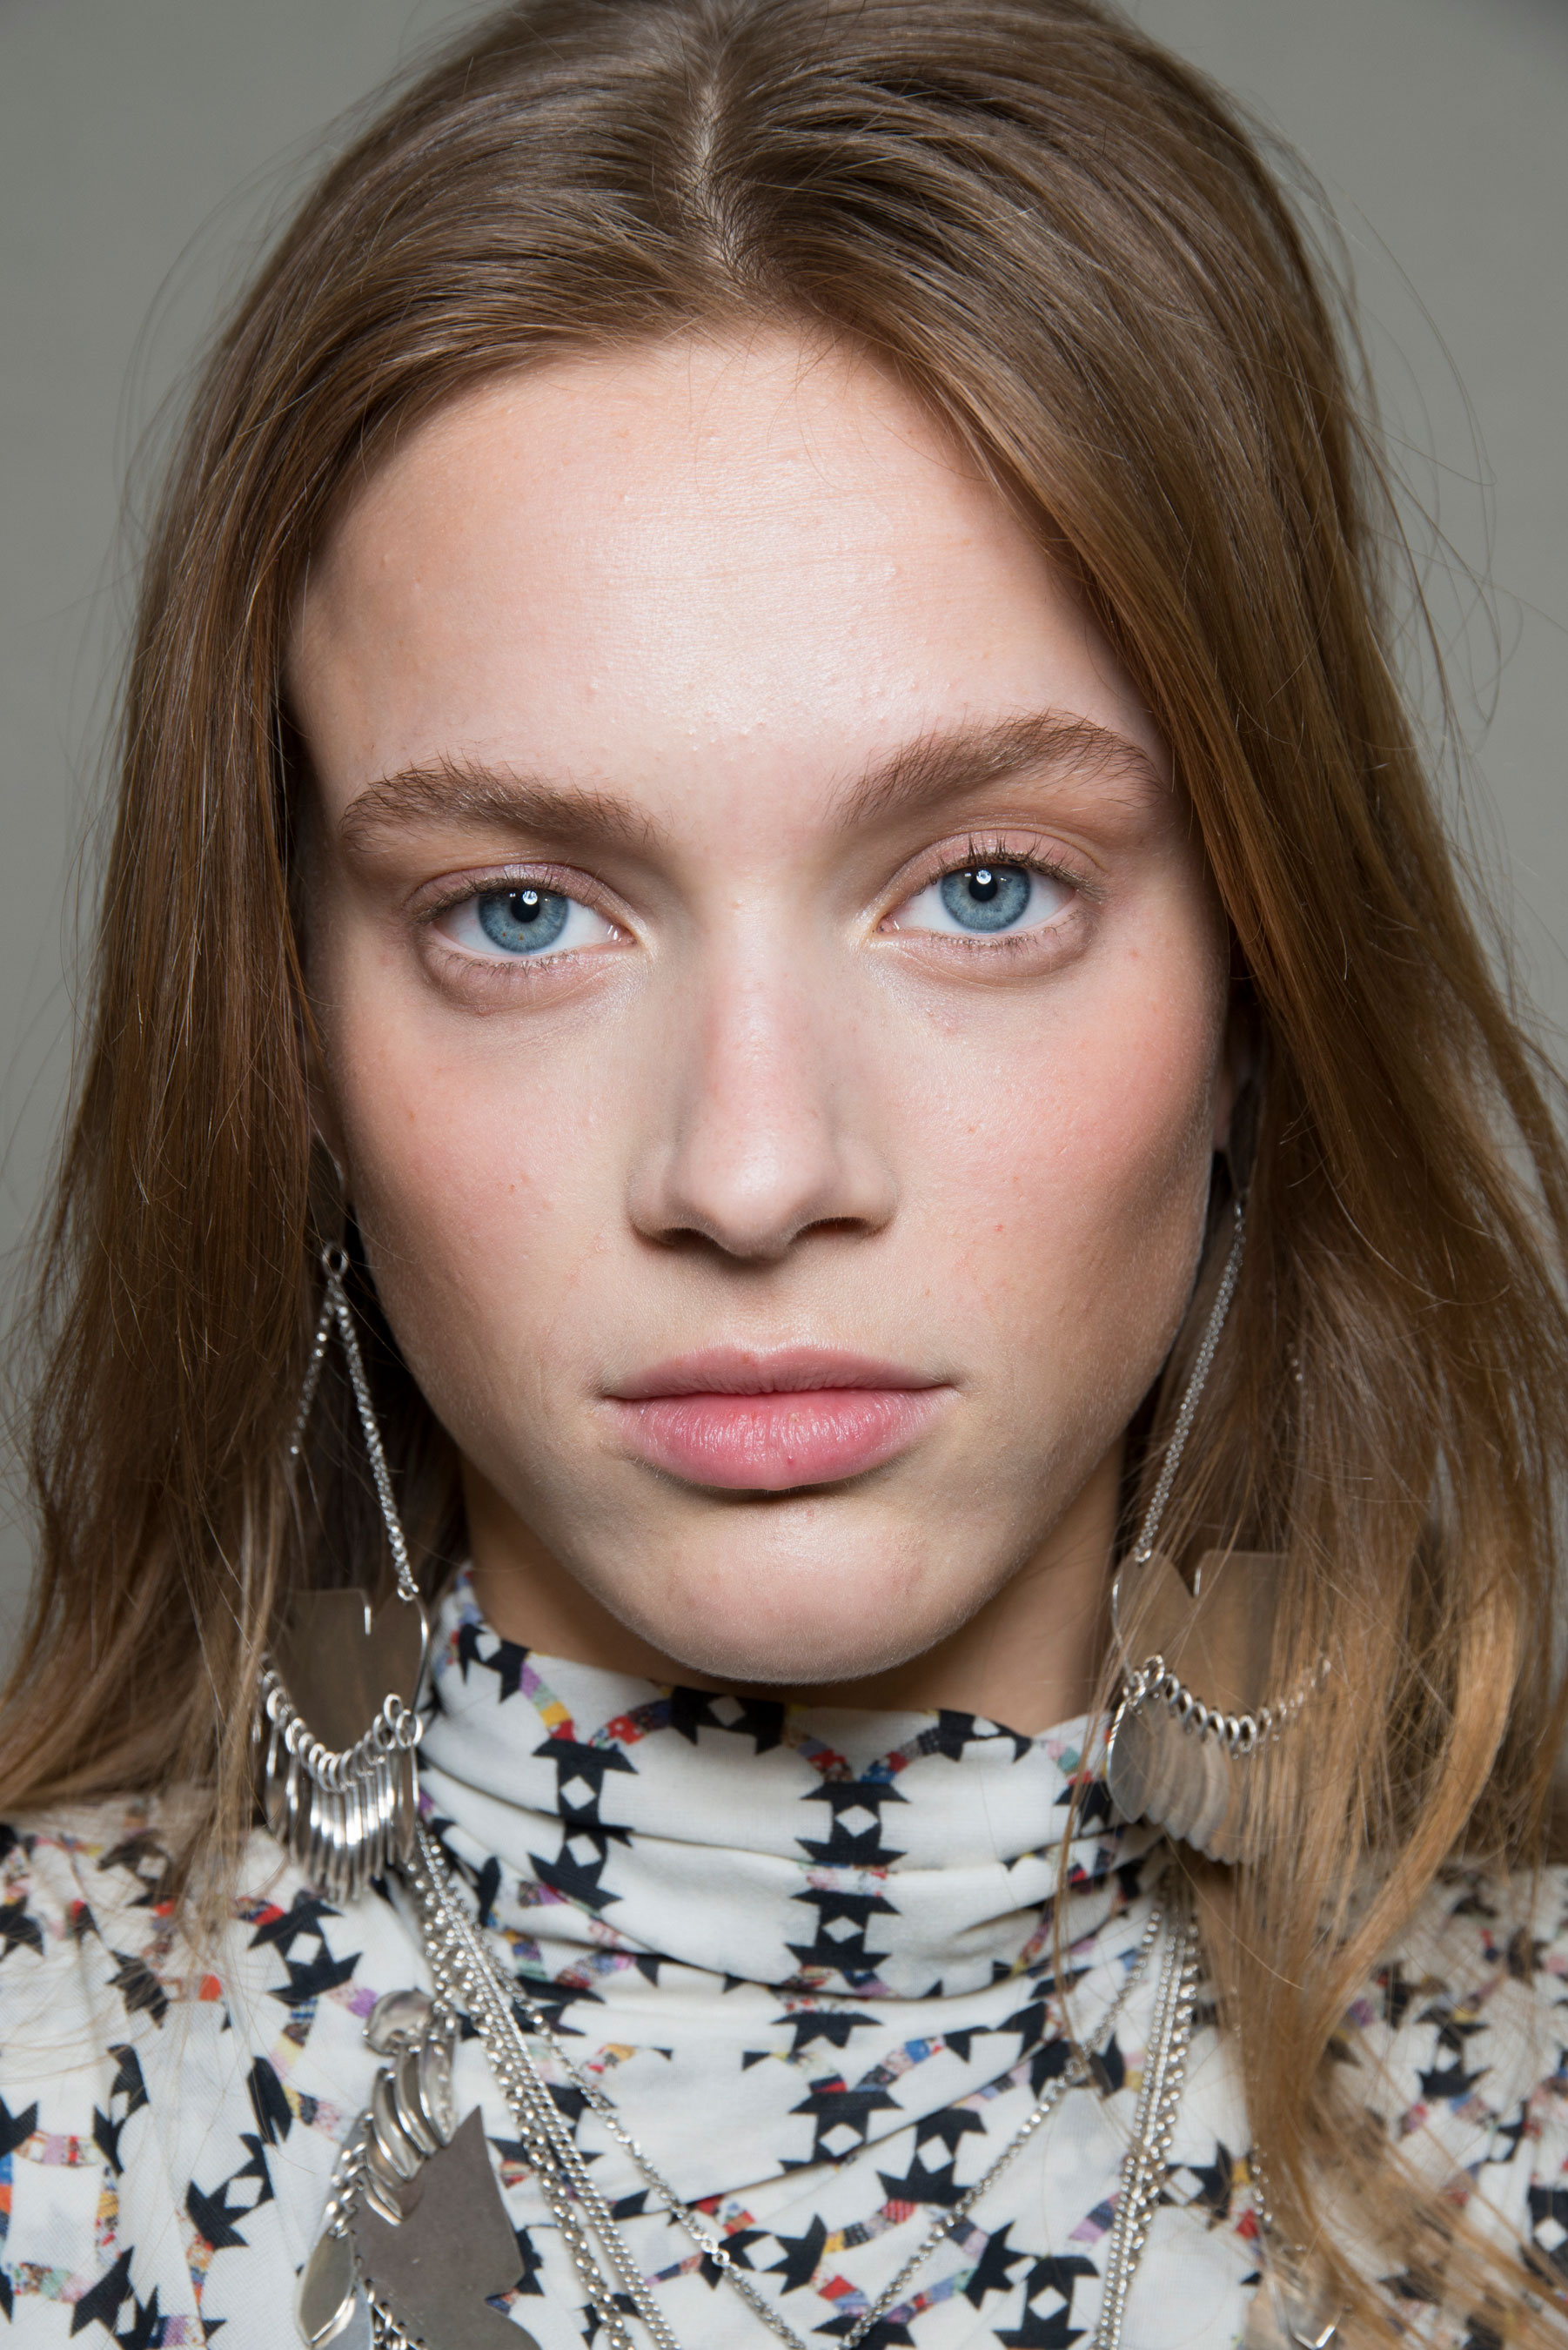 Isabel Marant Fall 2019 Fashion Show Backstage